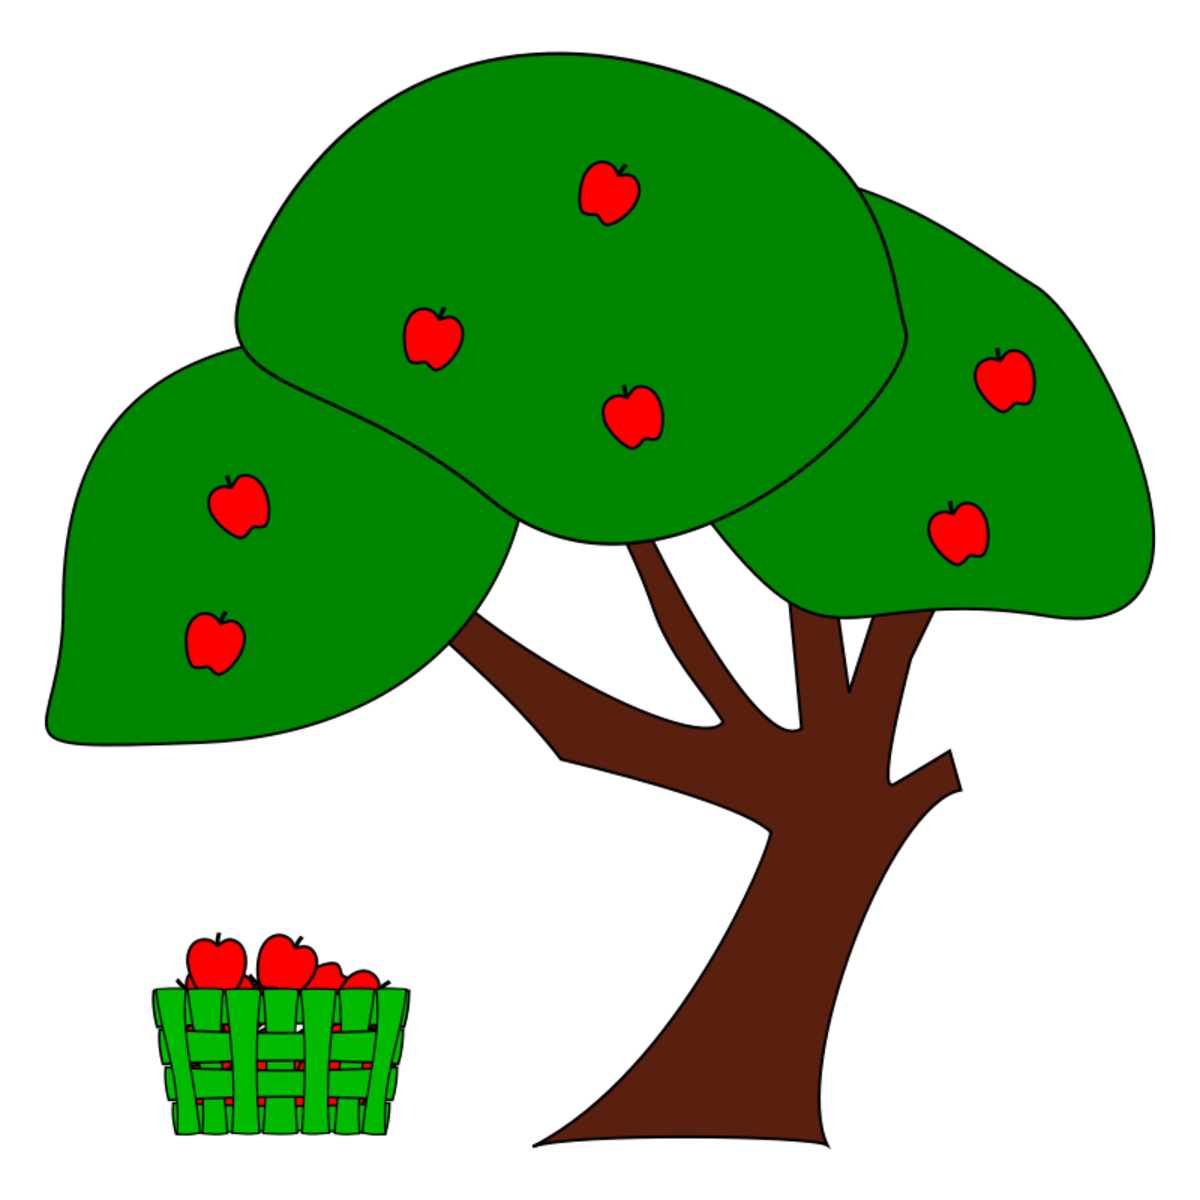 Ripe Apples on Tree with Bushel Basket of Apples